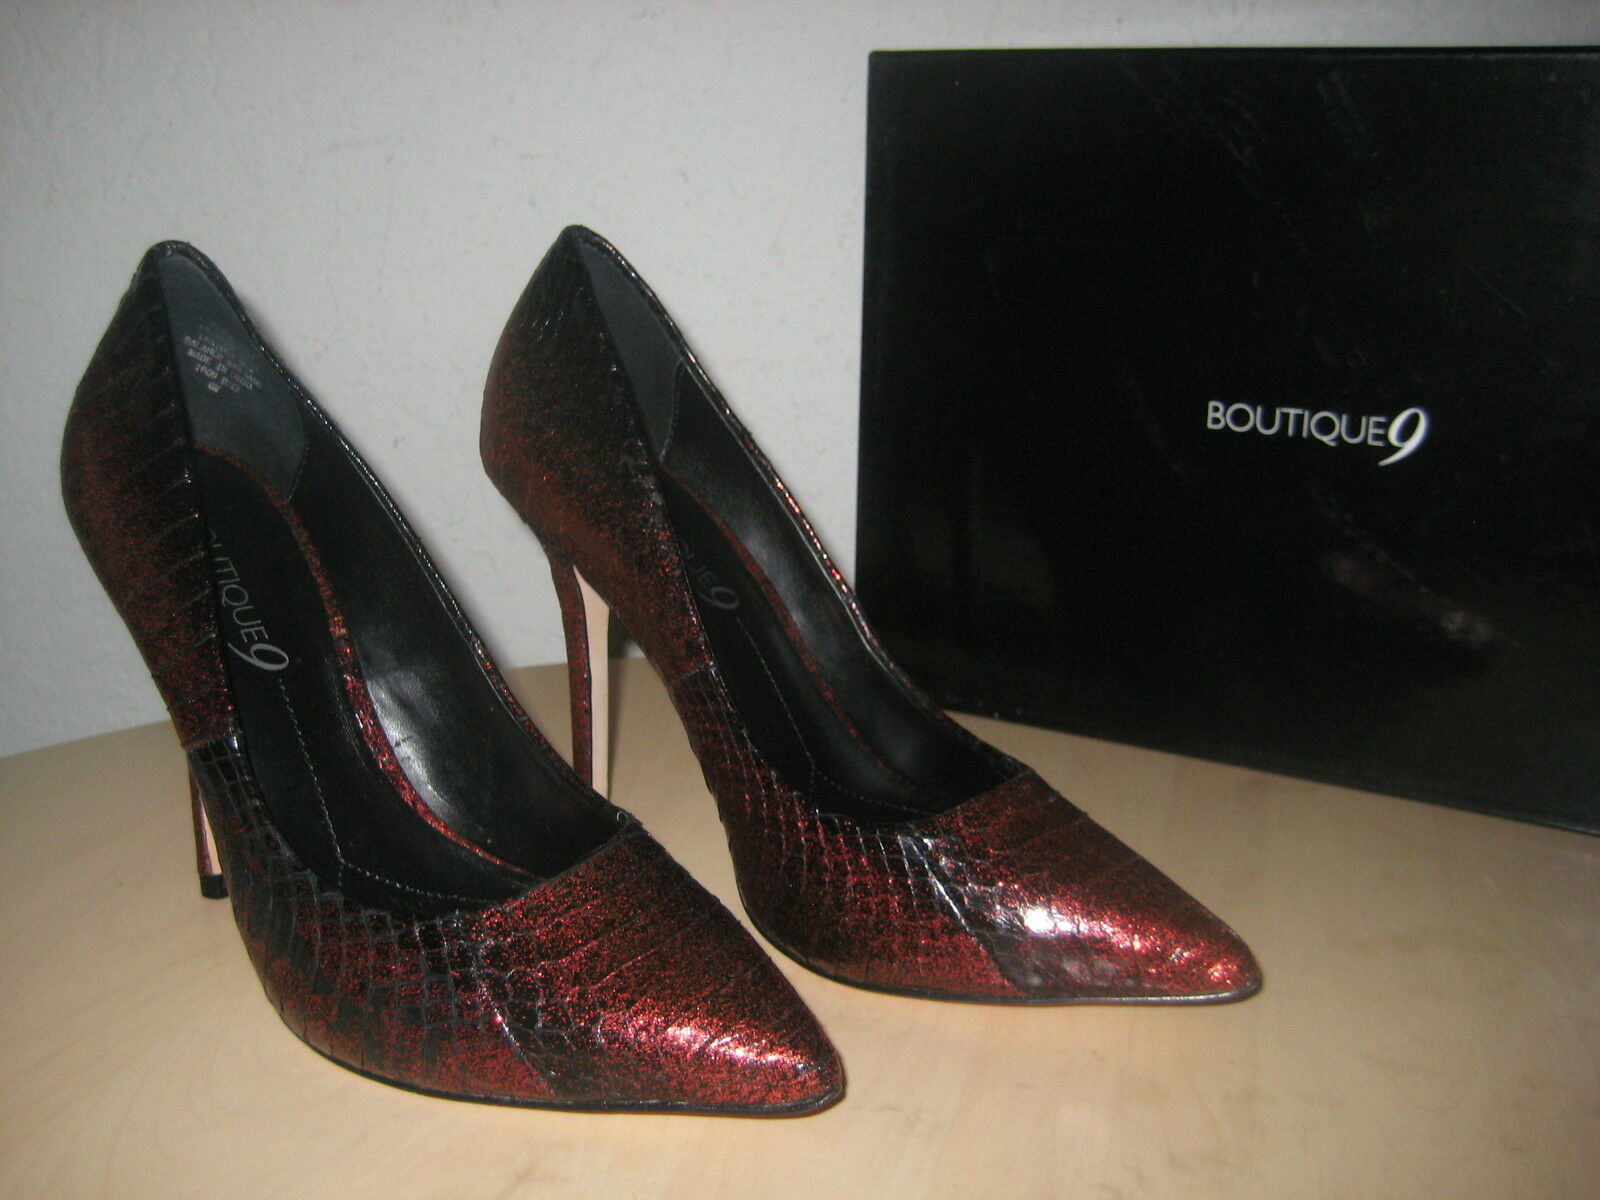 Boutique 9 Shoes Size 6 M Womens New Justine Dark Red Black Leather Pumps Heels